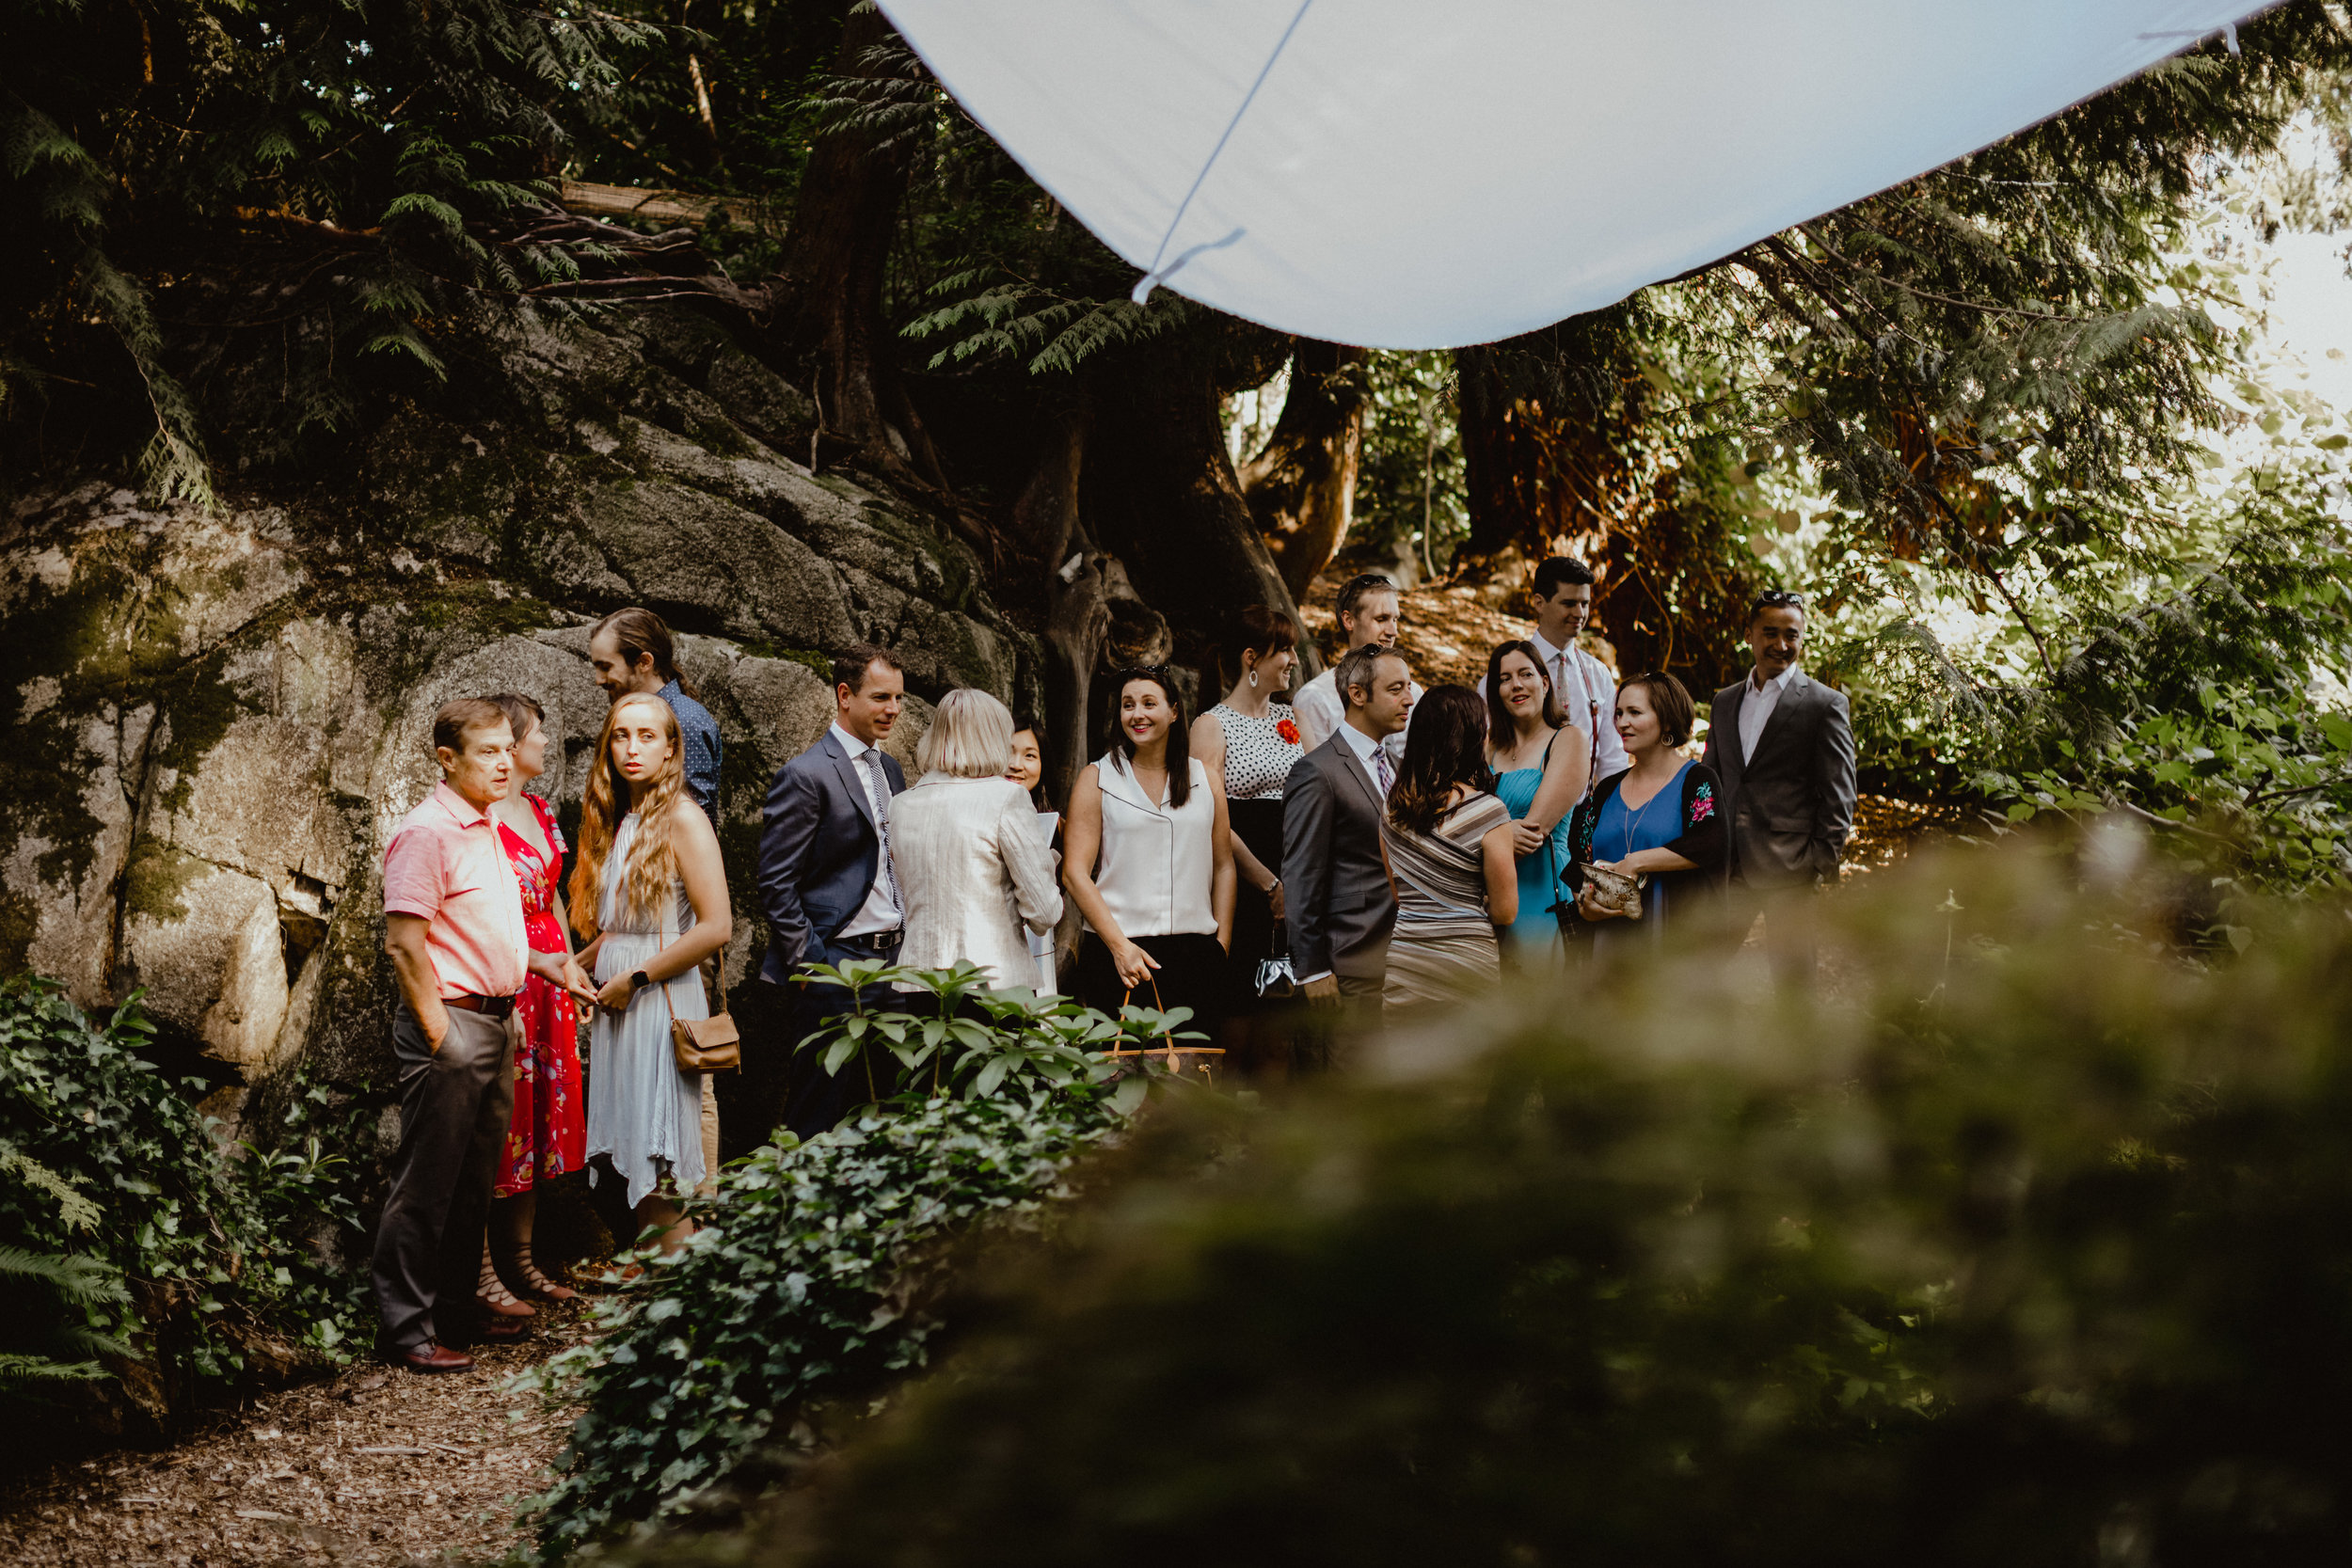 west-vancouver-backyard-wedding-77.jpg